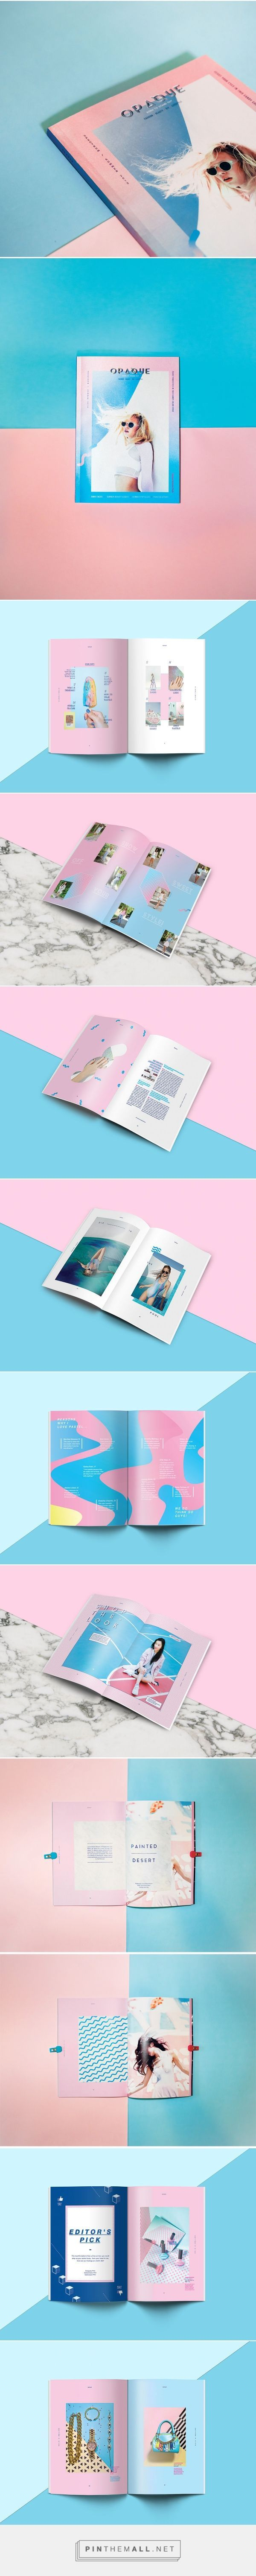 Magazine design OPAQUE by Widya Widya